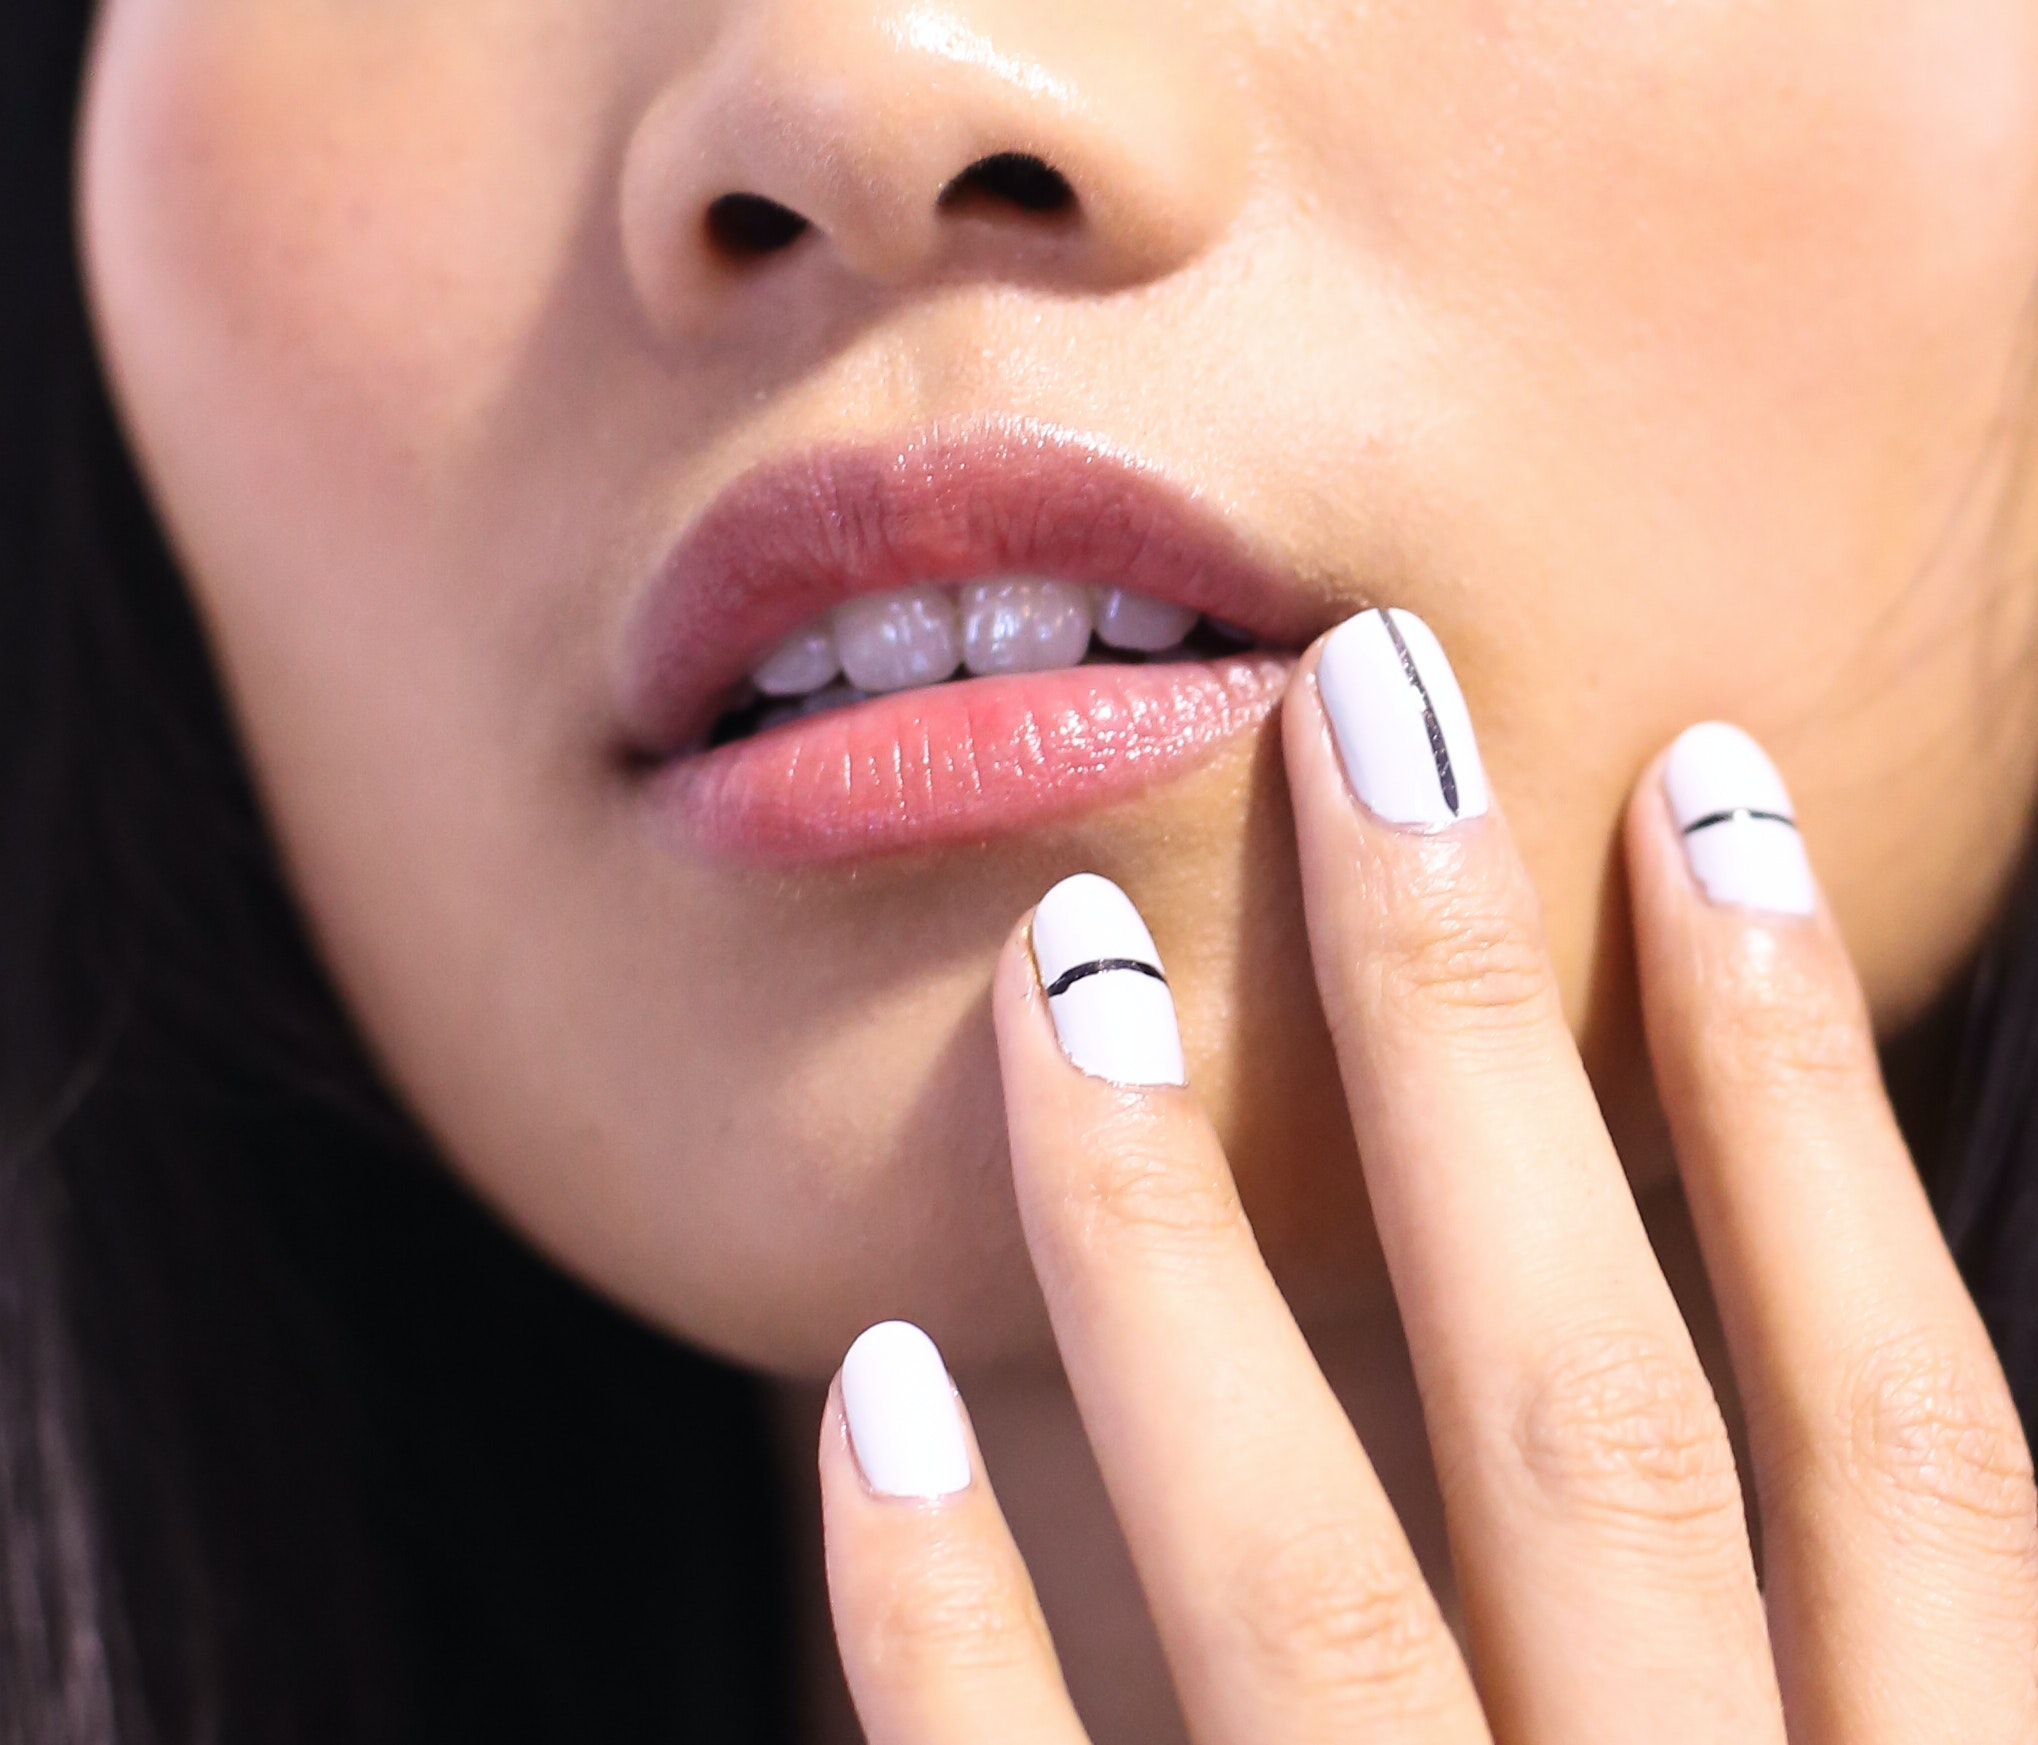 Fix A Broken Nail At Home With This Simple Little Hack Video